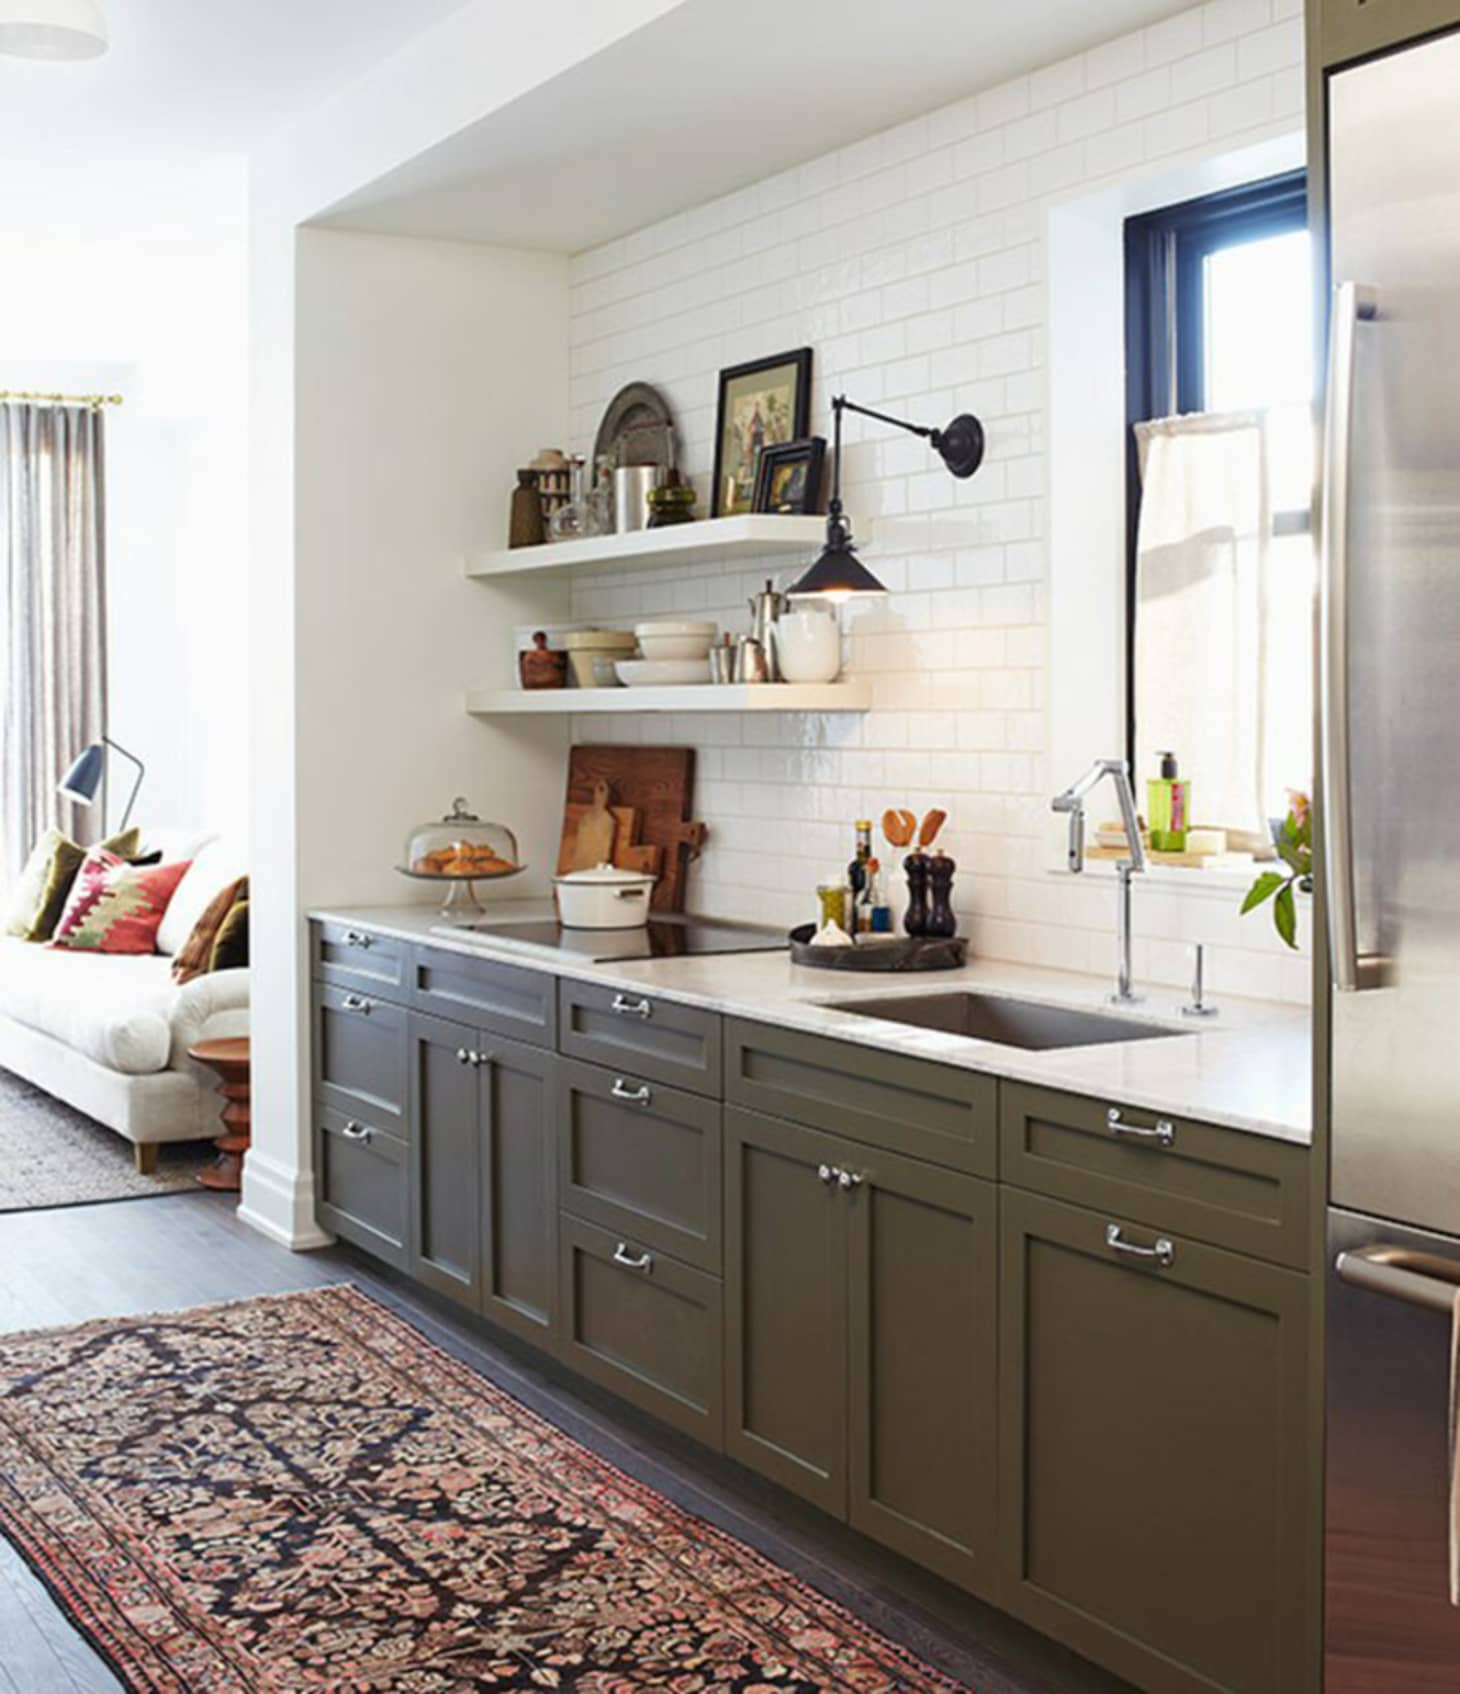 Green Painted Kitchen Galley: Green Painted Kitchen Cabinets We Love Right Now